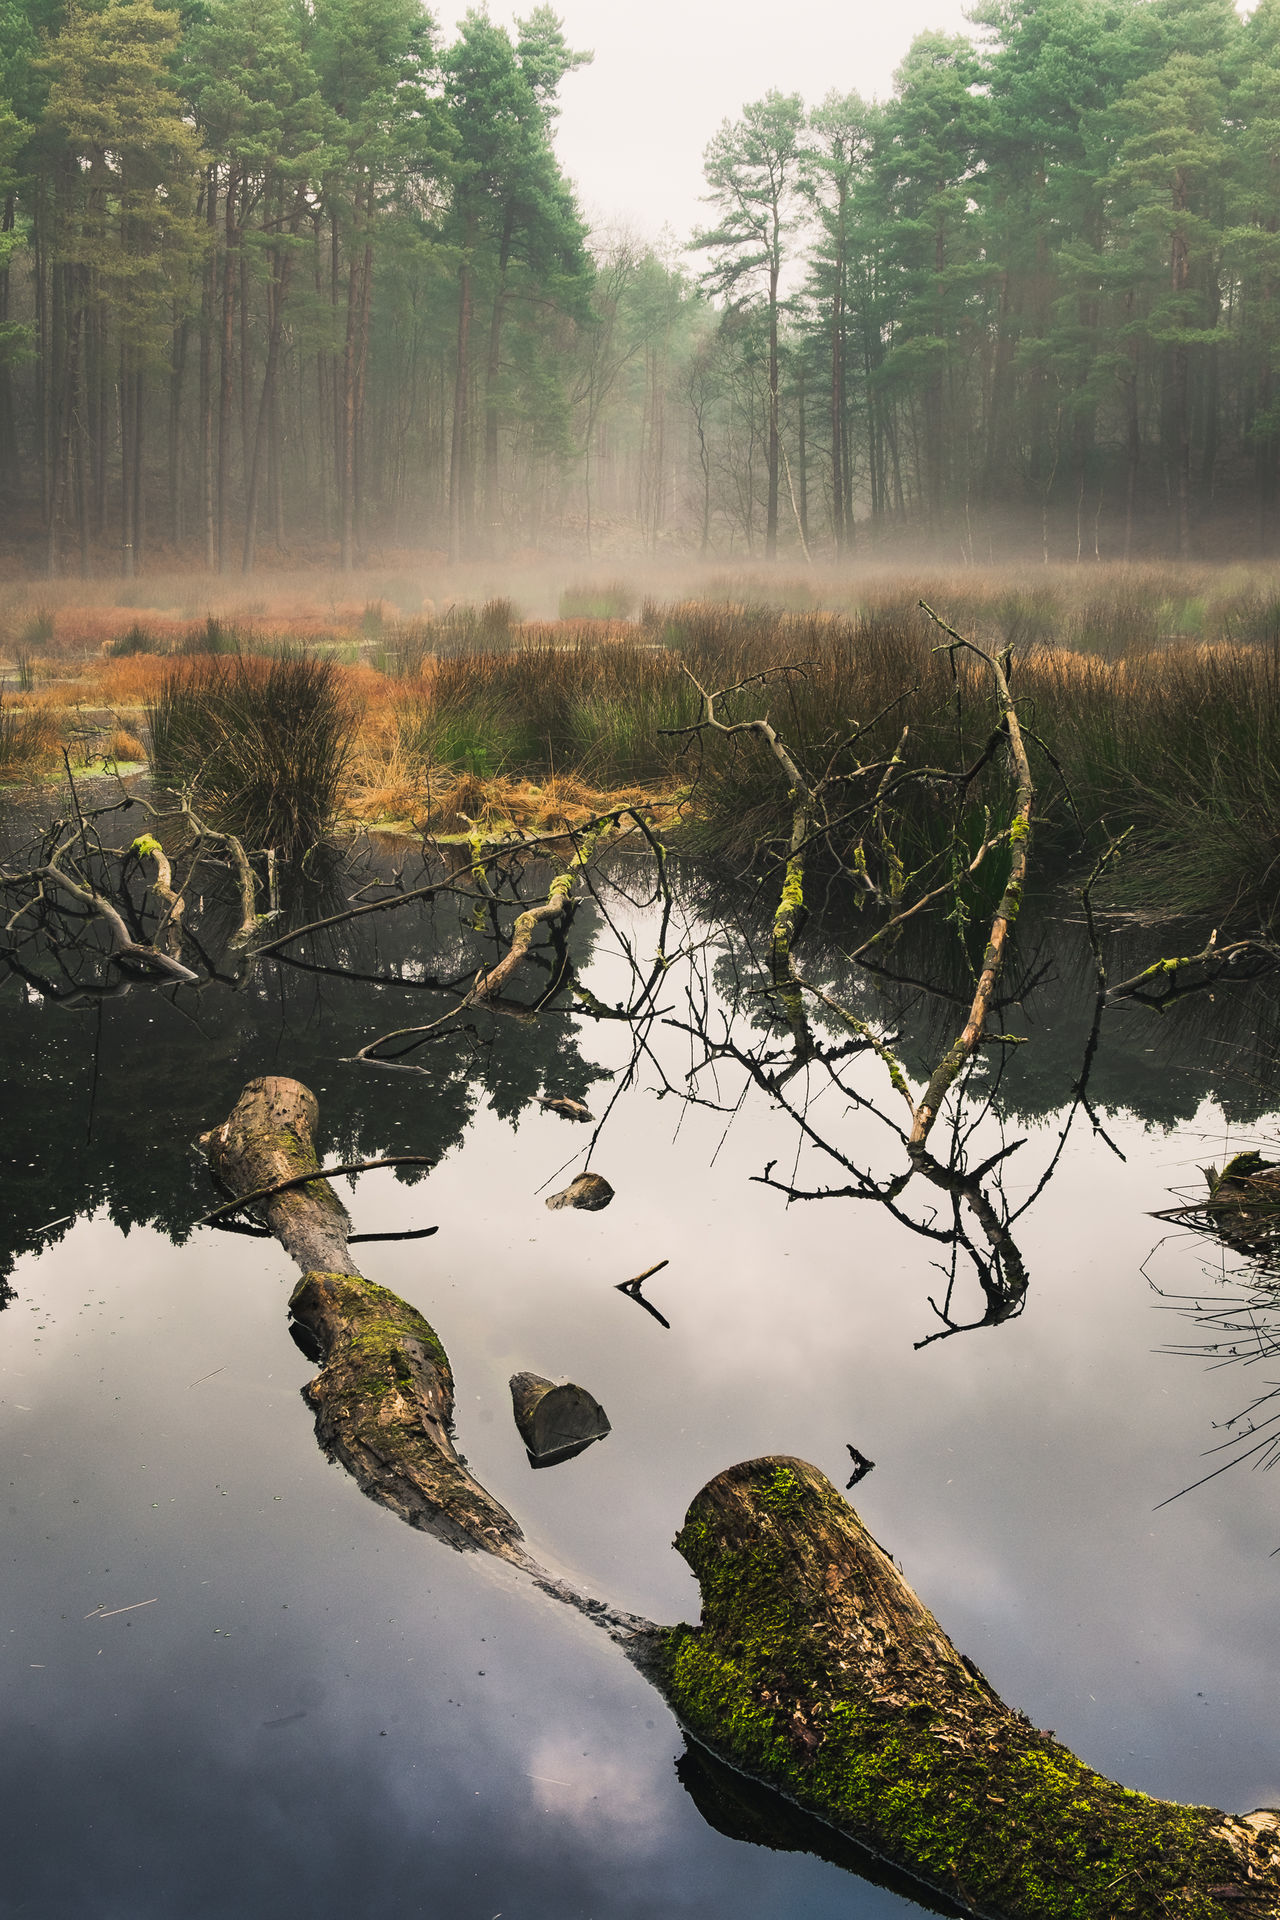 Beauty In Nature Cheshire Day England Forrest Forrest Photography Growth Lake Mist Misty Morning Nature No People Outdoors Plant Reflection Reflection Lake Scenics Sky Tranquility Tree Water Woods